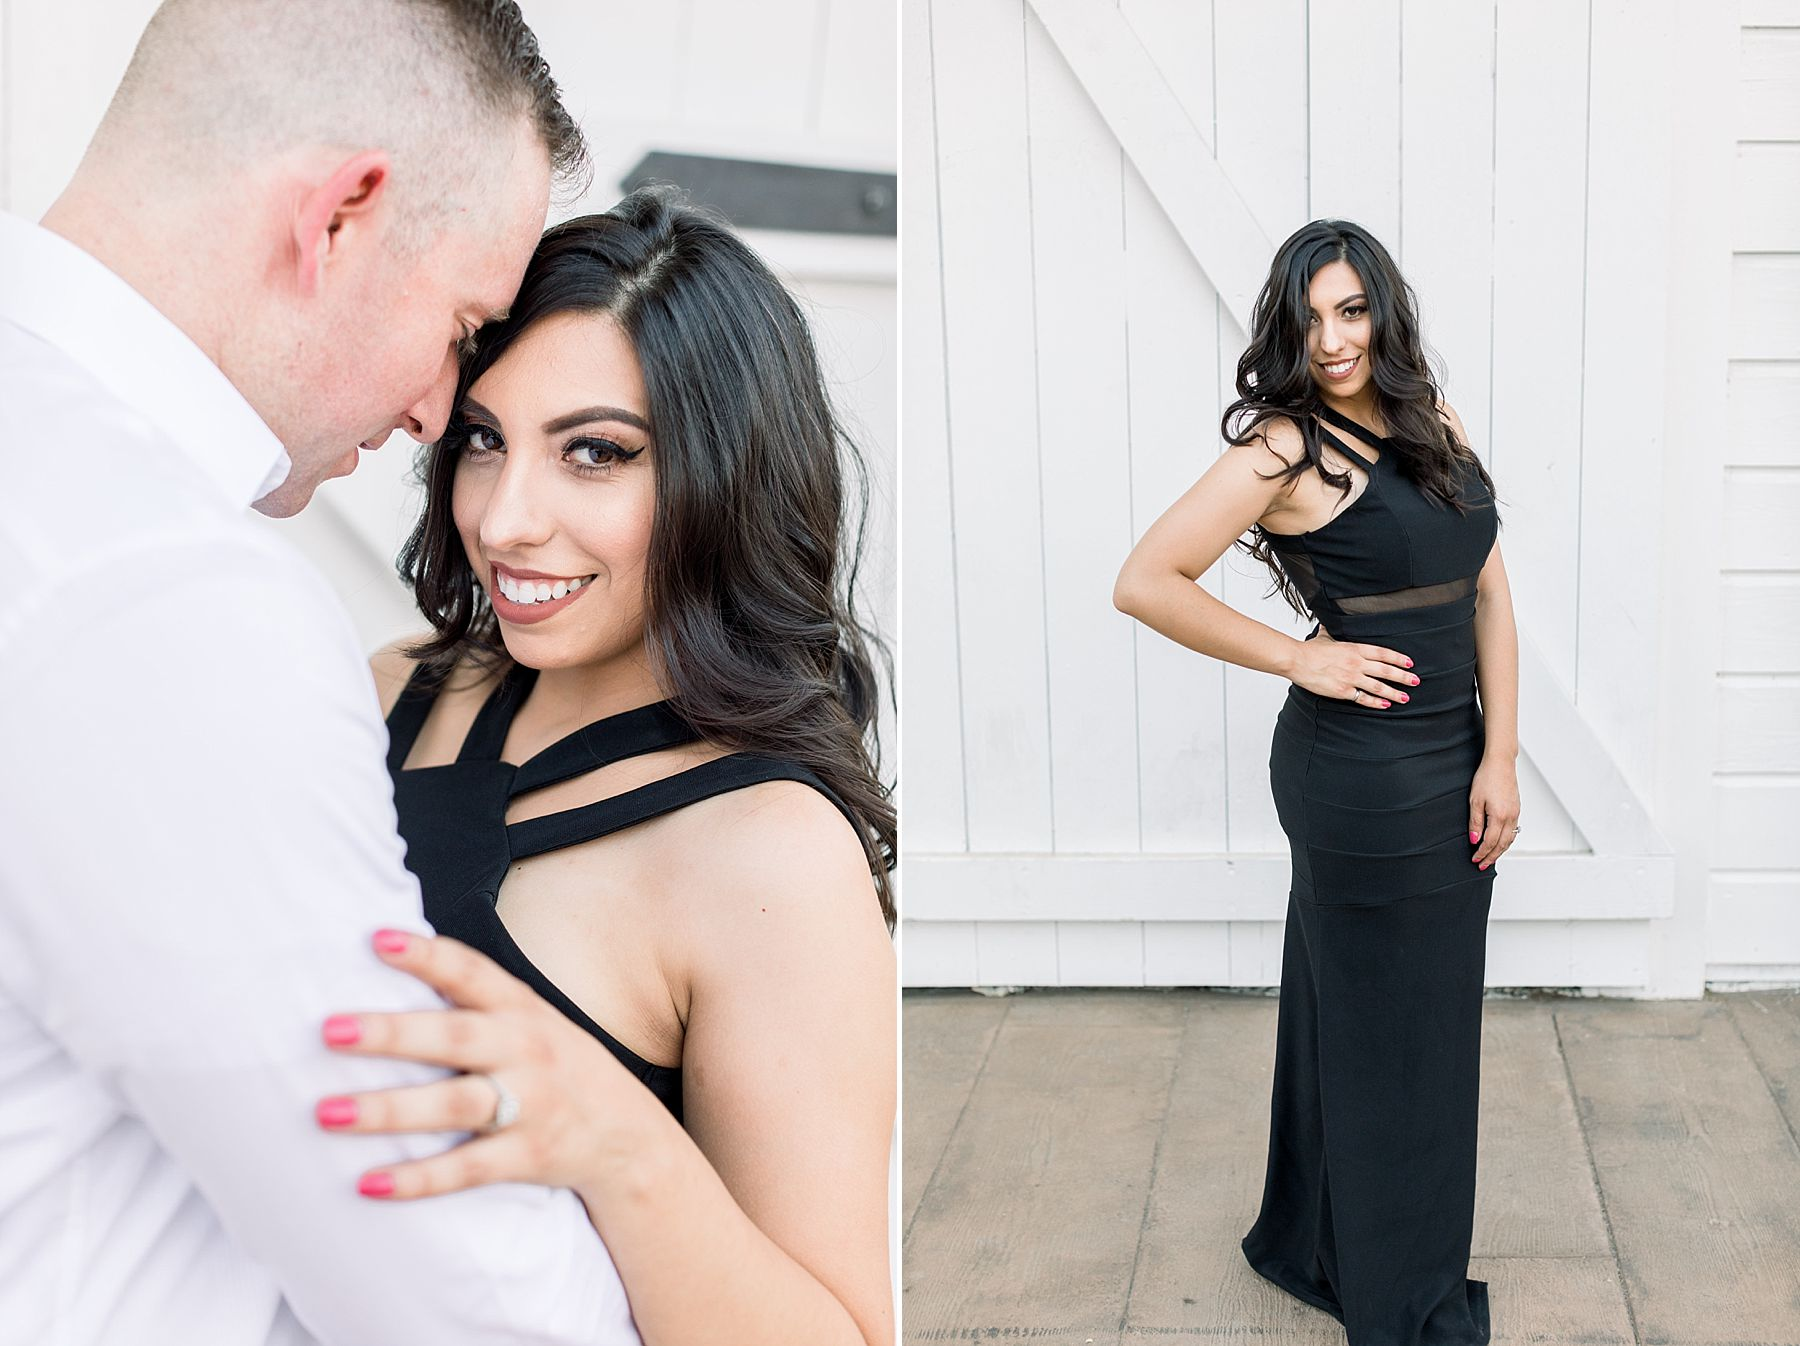 Old Sacramento Engagement Session - Downtown Sacramento Engagement Session - Black Tie Engagement Photos - Ashley Baumgartner - Sacramento Wedding Photographer_0016.jpg